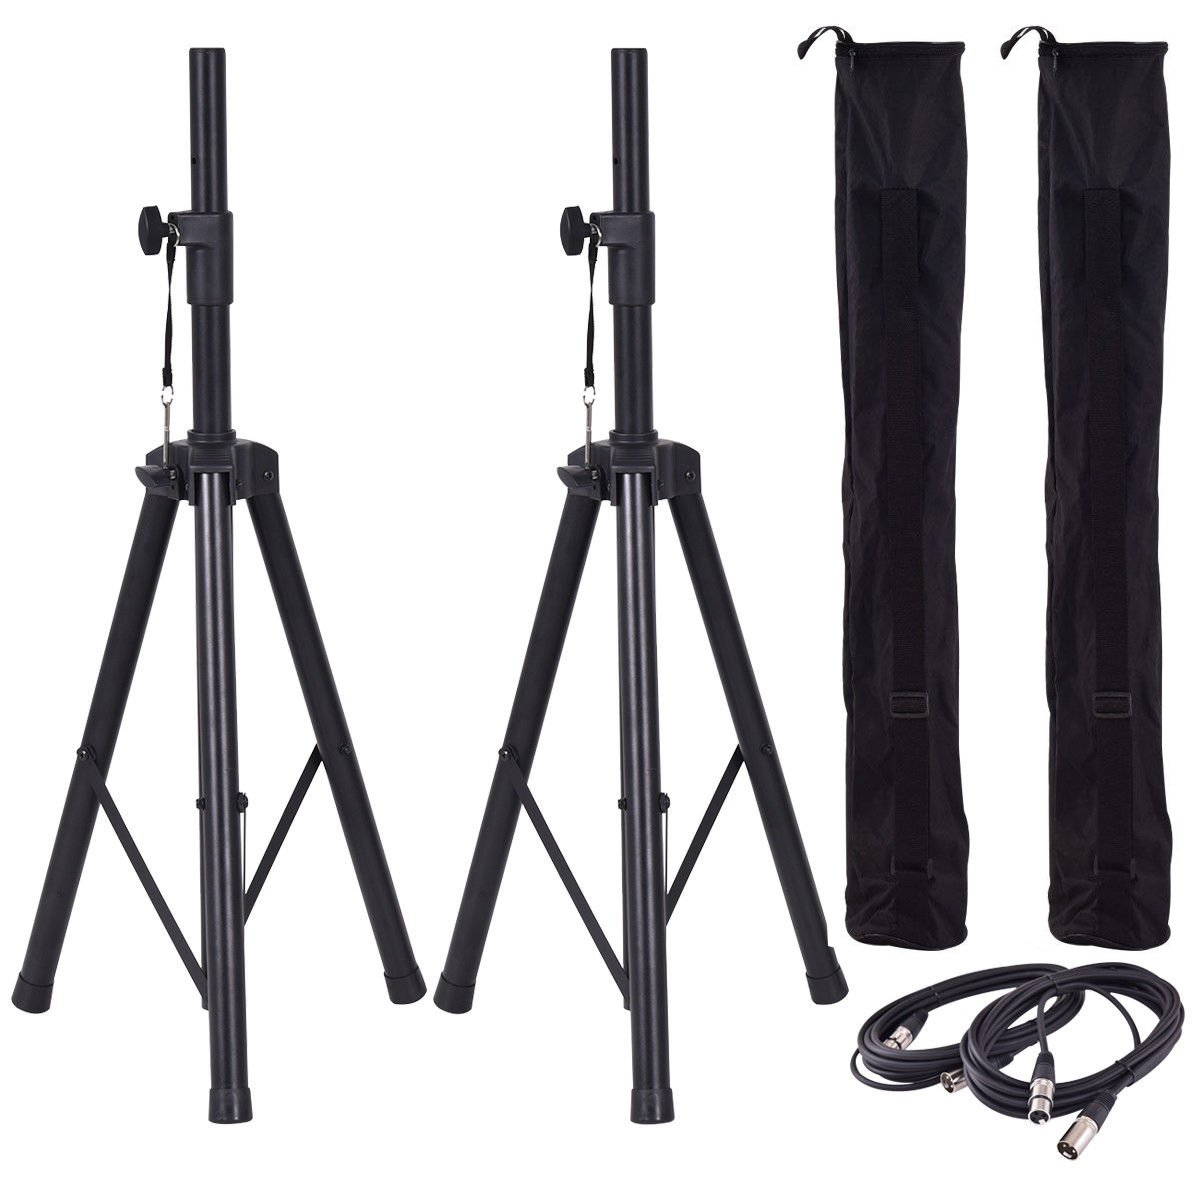 Costzon Height Adjustable Pair of Tripod DJ PA Speaker Stands Adjustable Height Stand w/Carry Bag (37''-74'' + Cables)